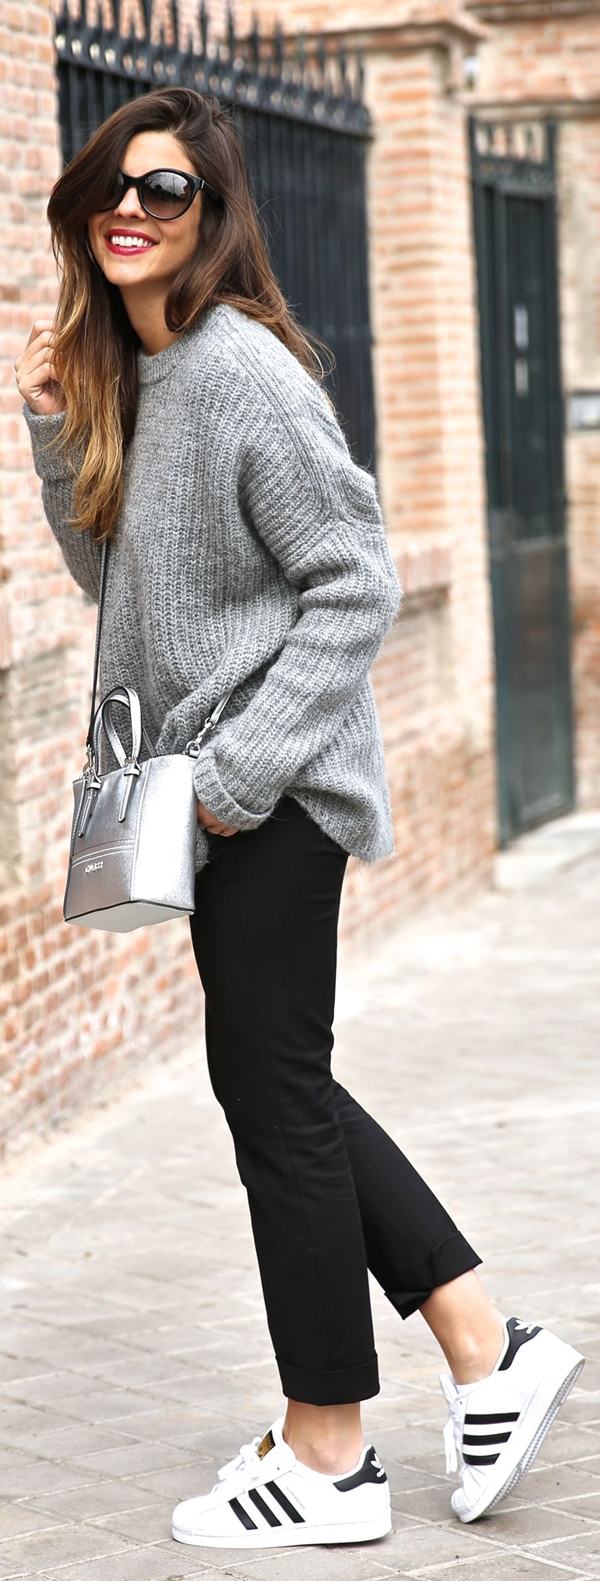 cute-winter-outfit-ideas-for-girls-34